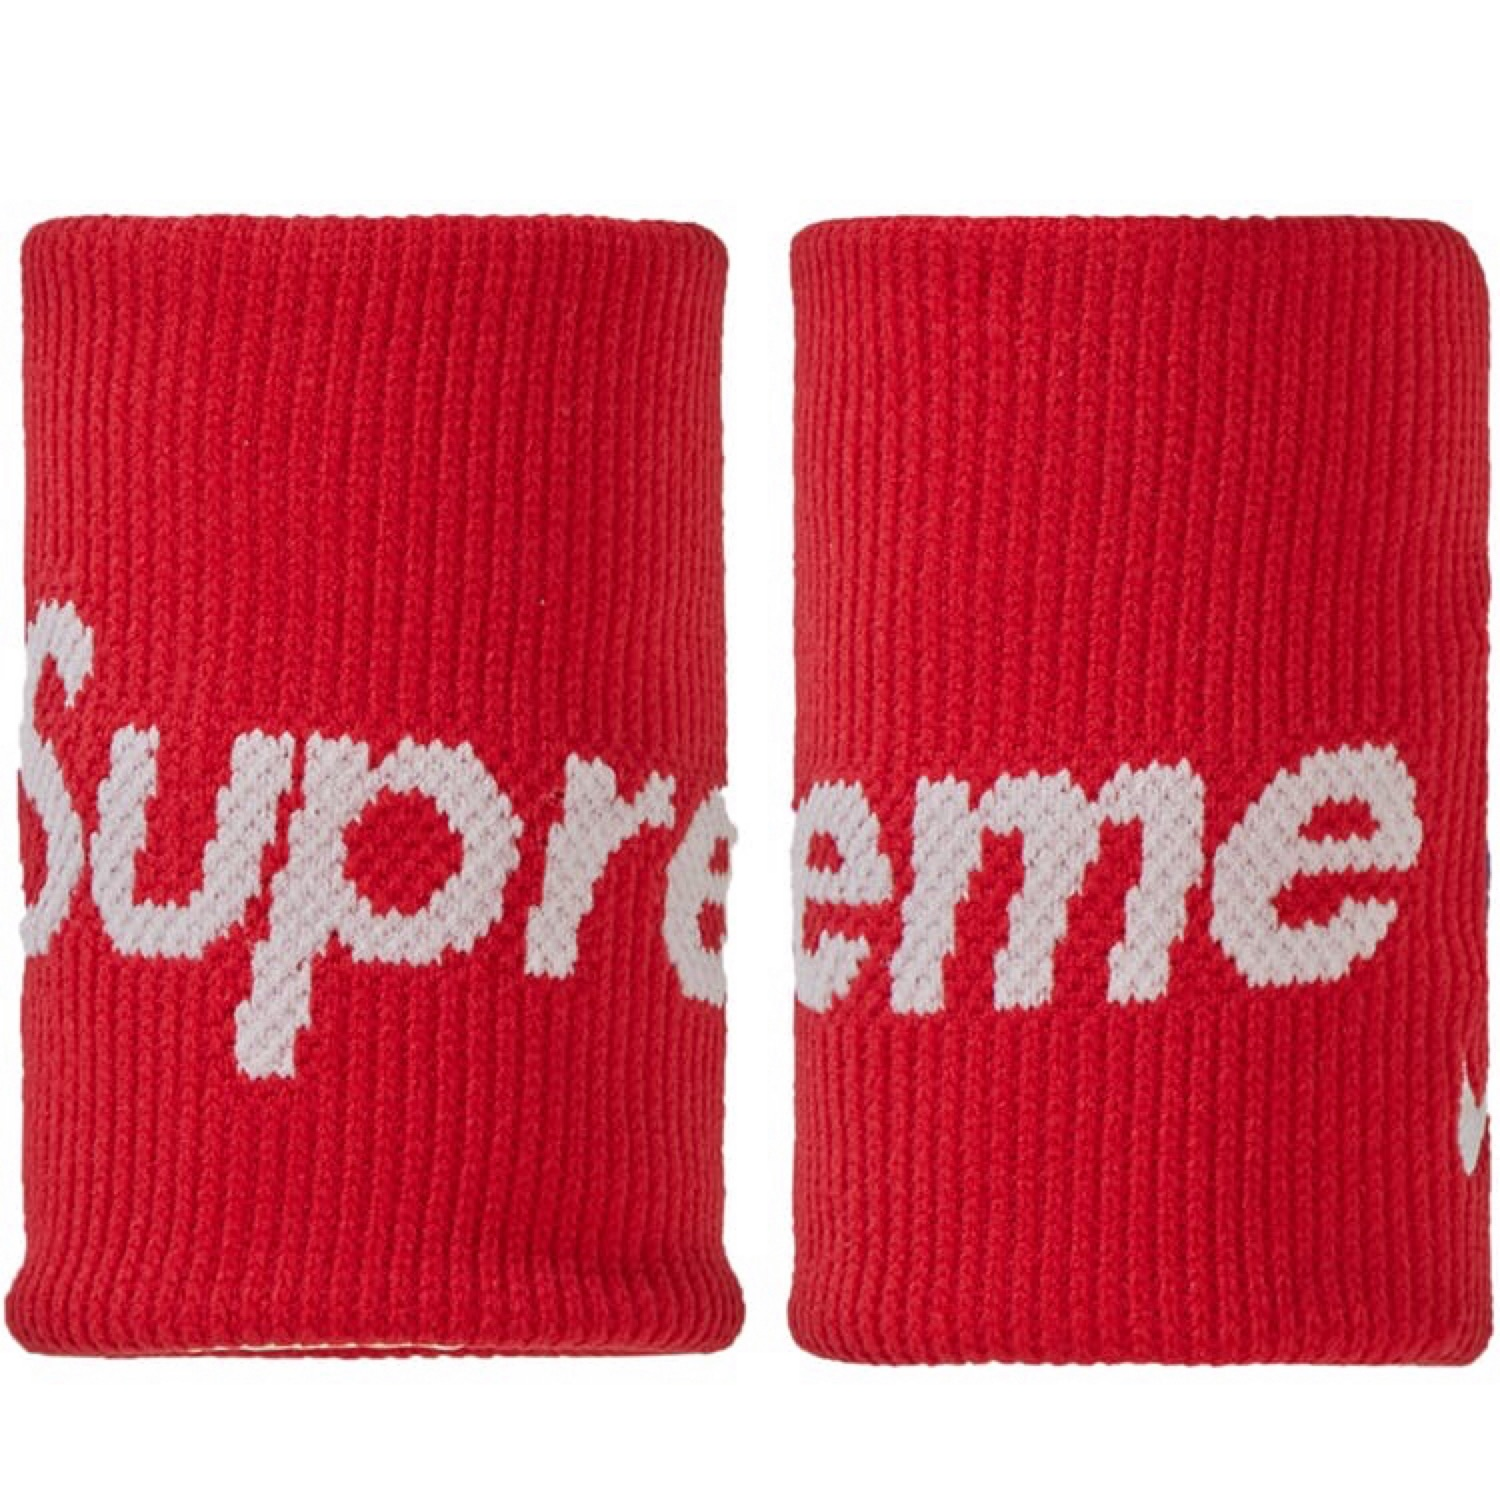 Supreme Nike Nba Wristbands Red